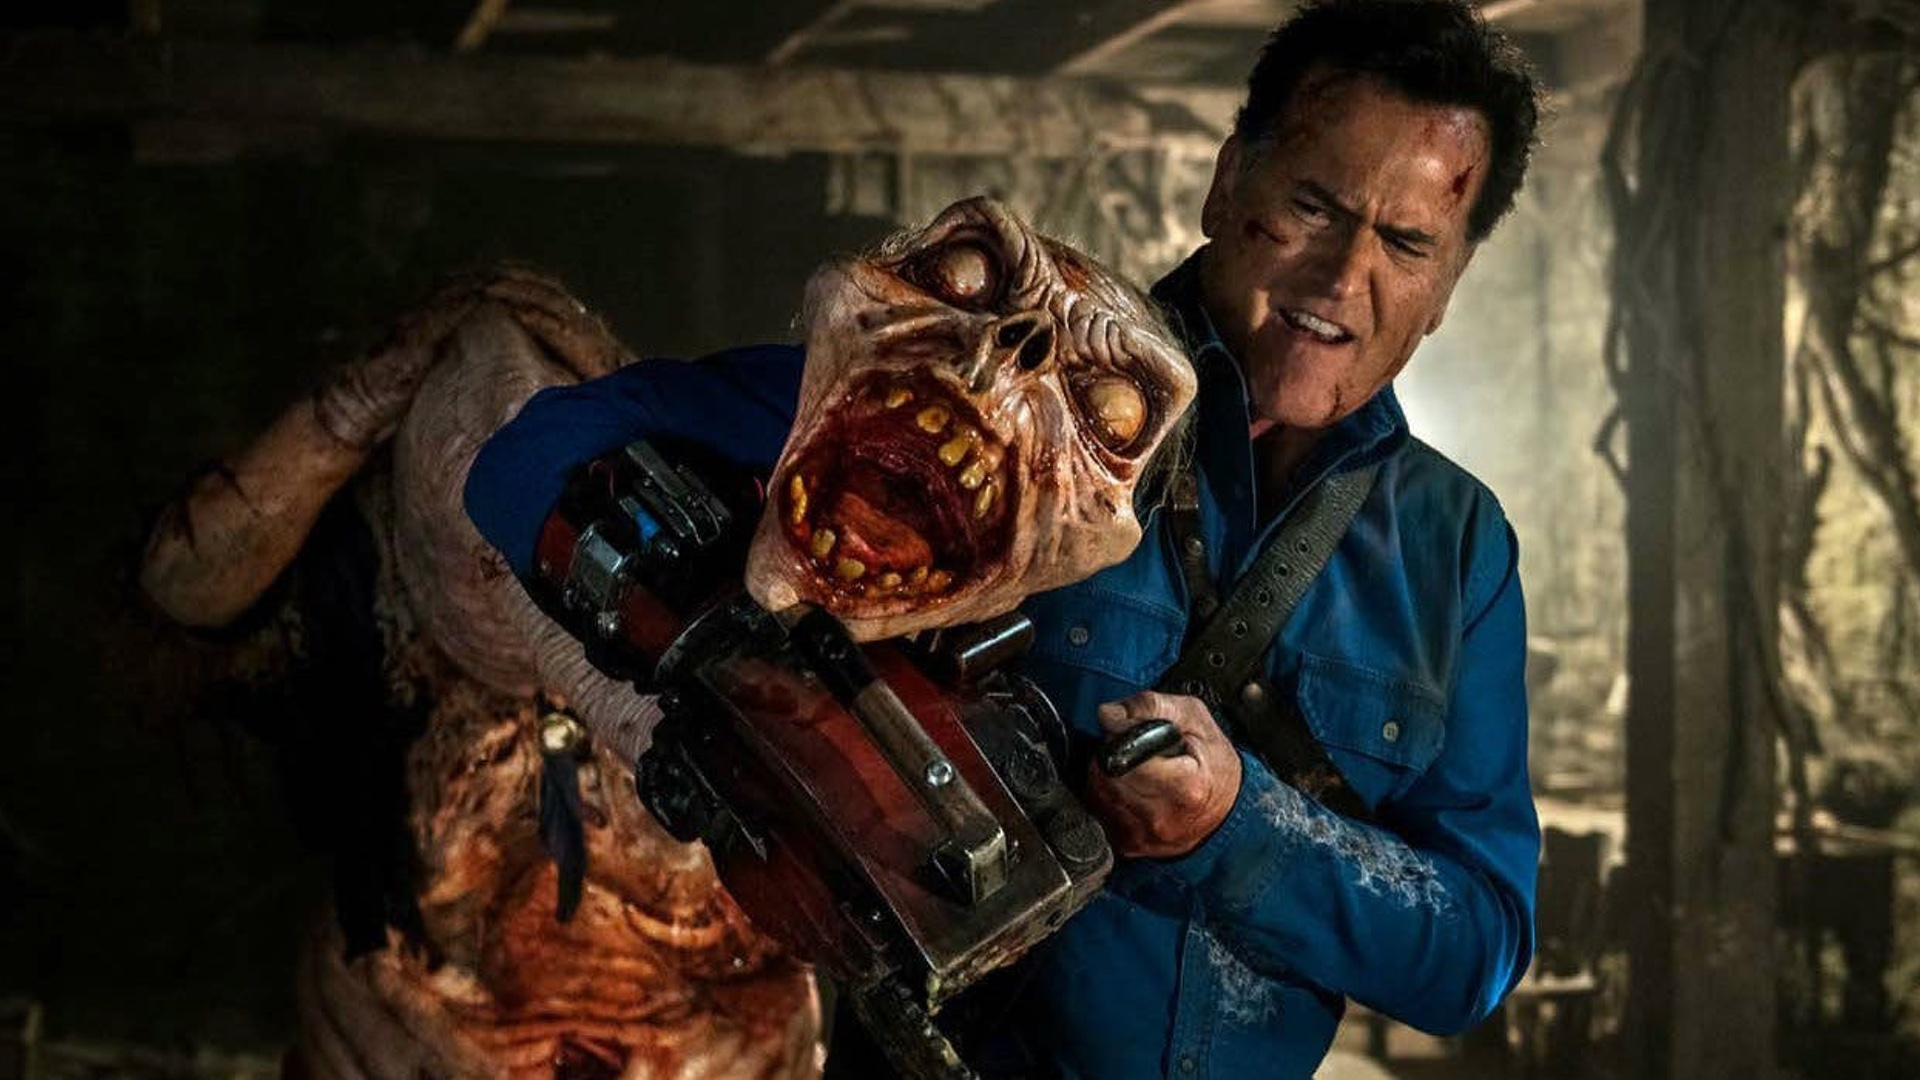 Evil Dead Bruce Campbell Announced That He Would Be Retiring From The Character It Was A Sad Time For Horror Fans But It Looks Like Hes